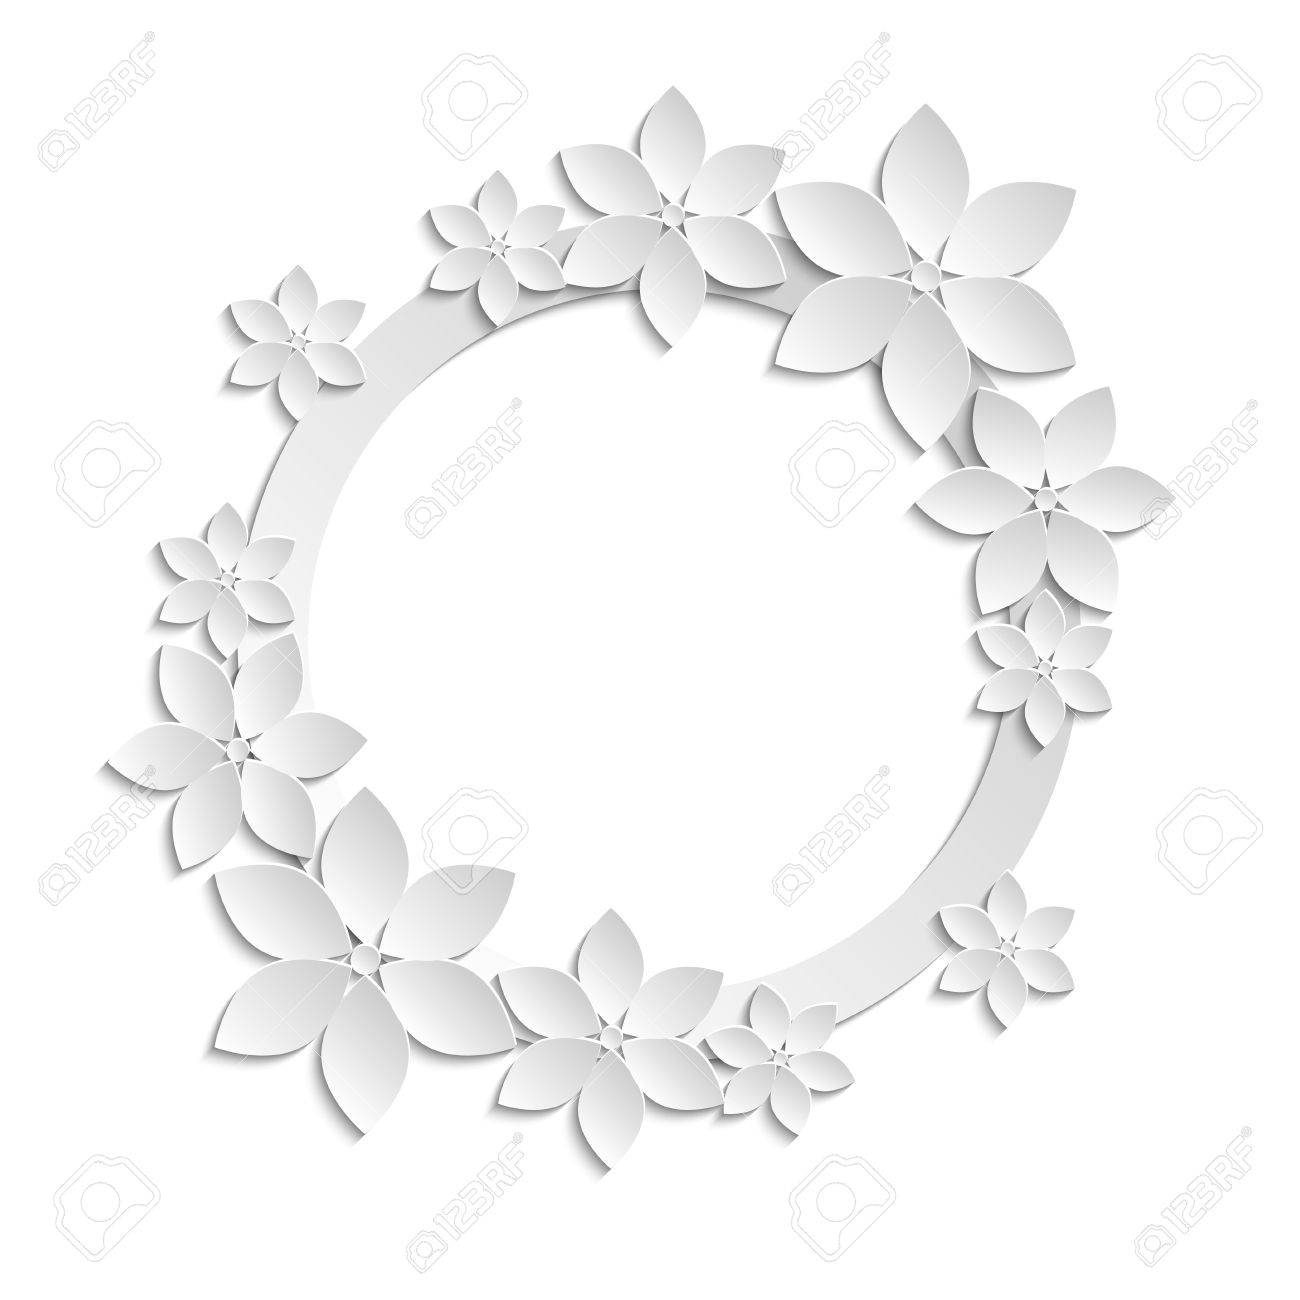 1300x1300 Decorative White Paper Cut Border With White Paper Flowers. 3d